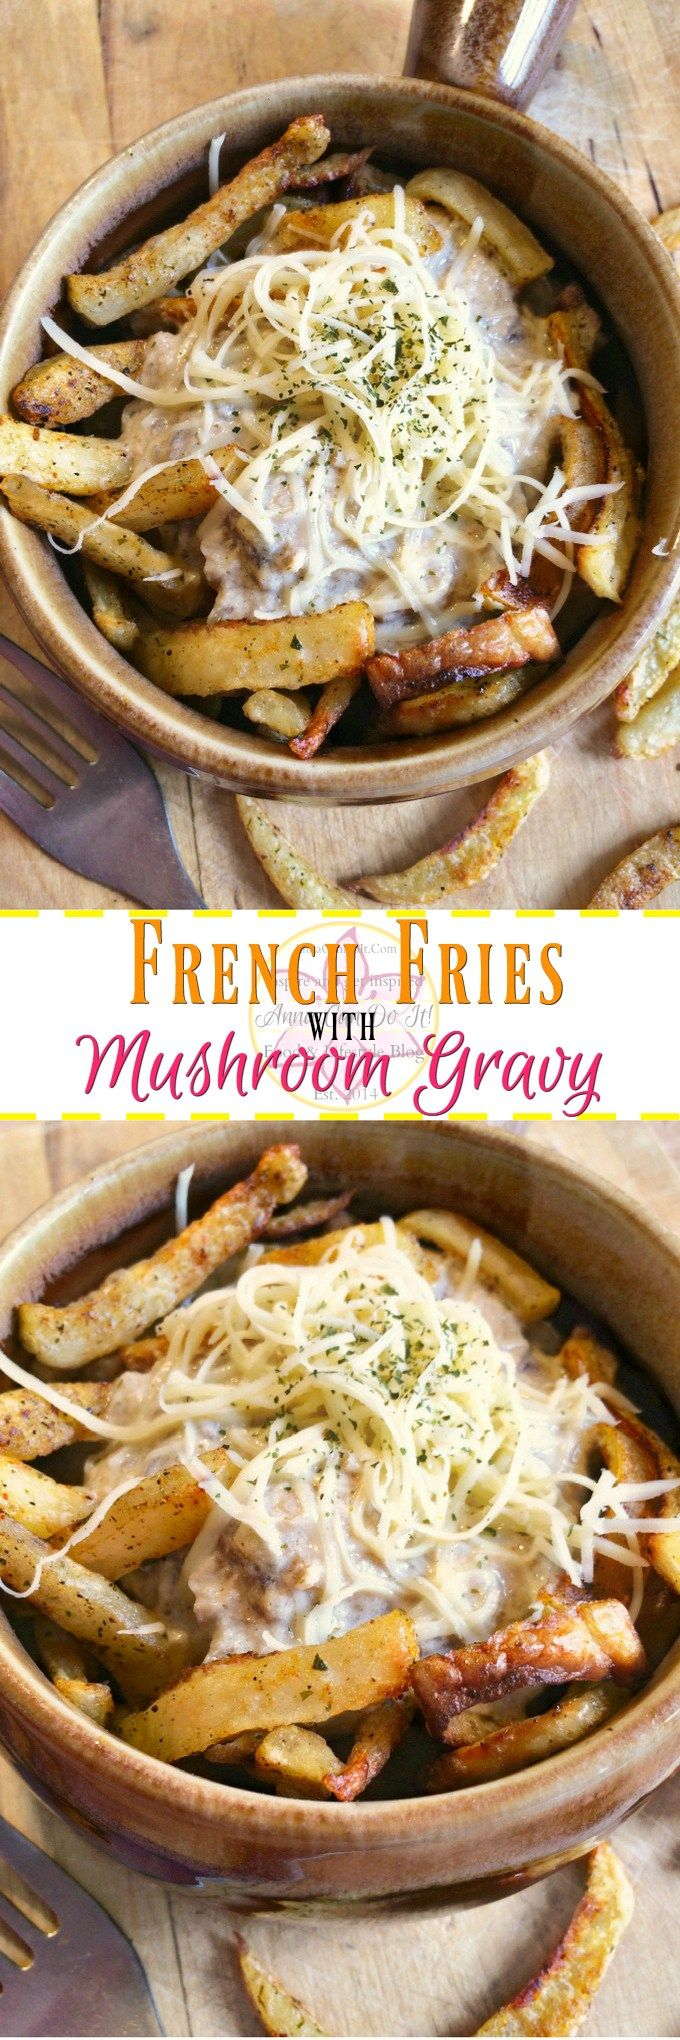 French Fries with Mushroom Gravy - Anna Can Do It!